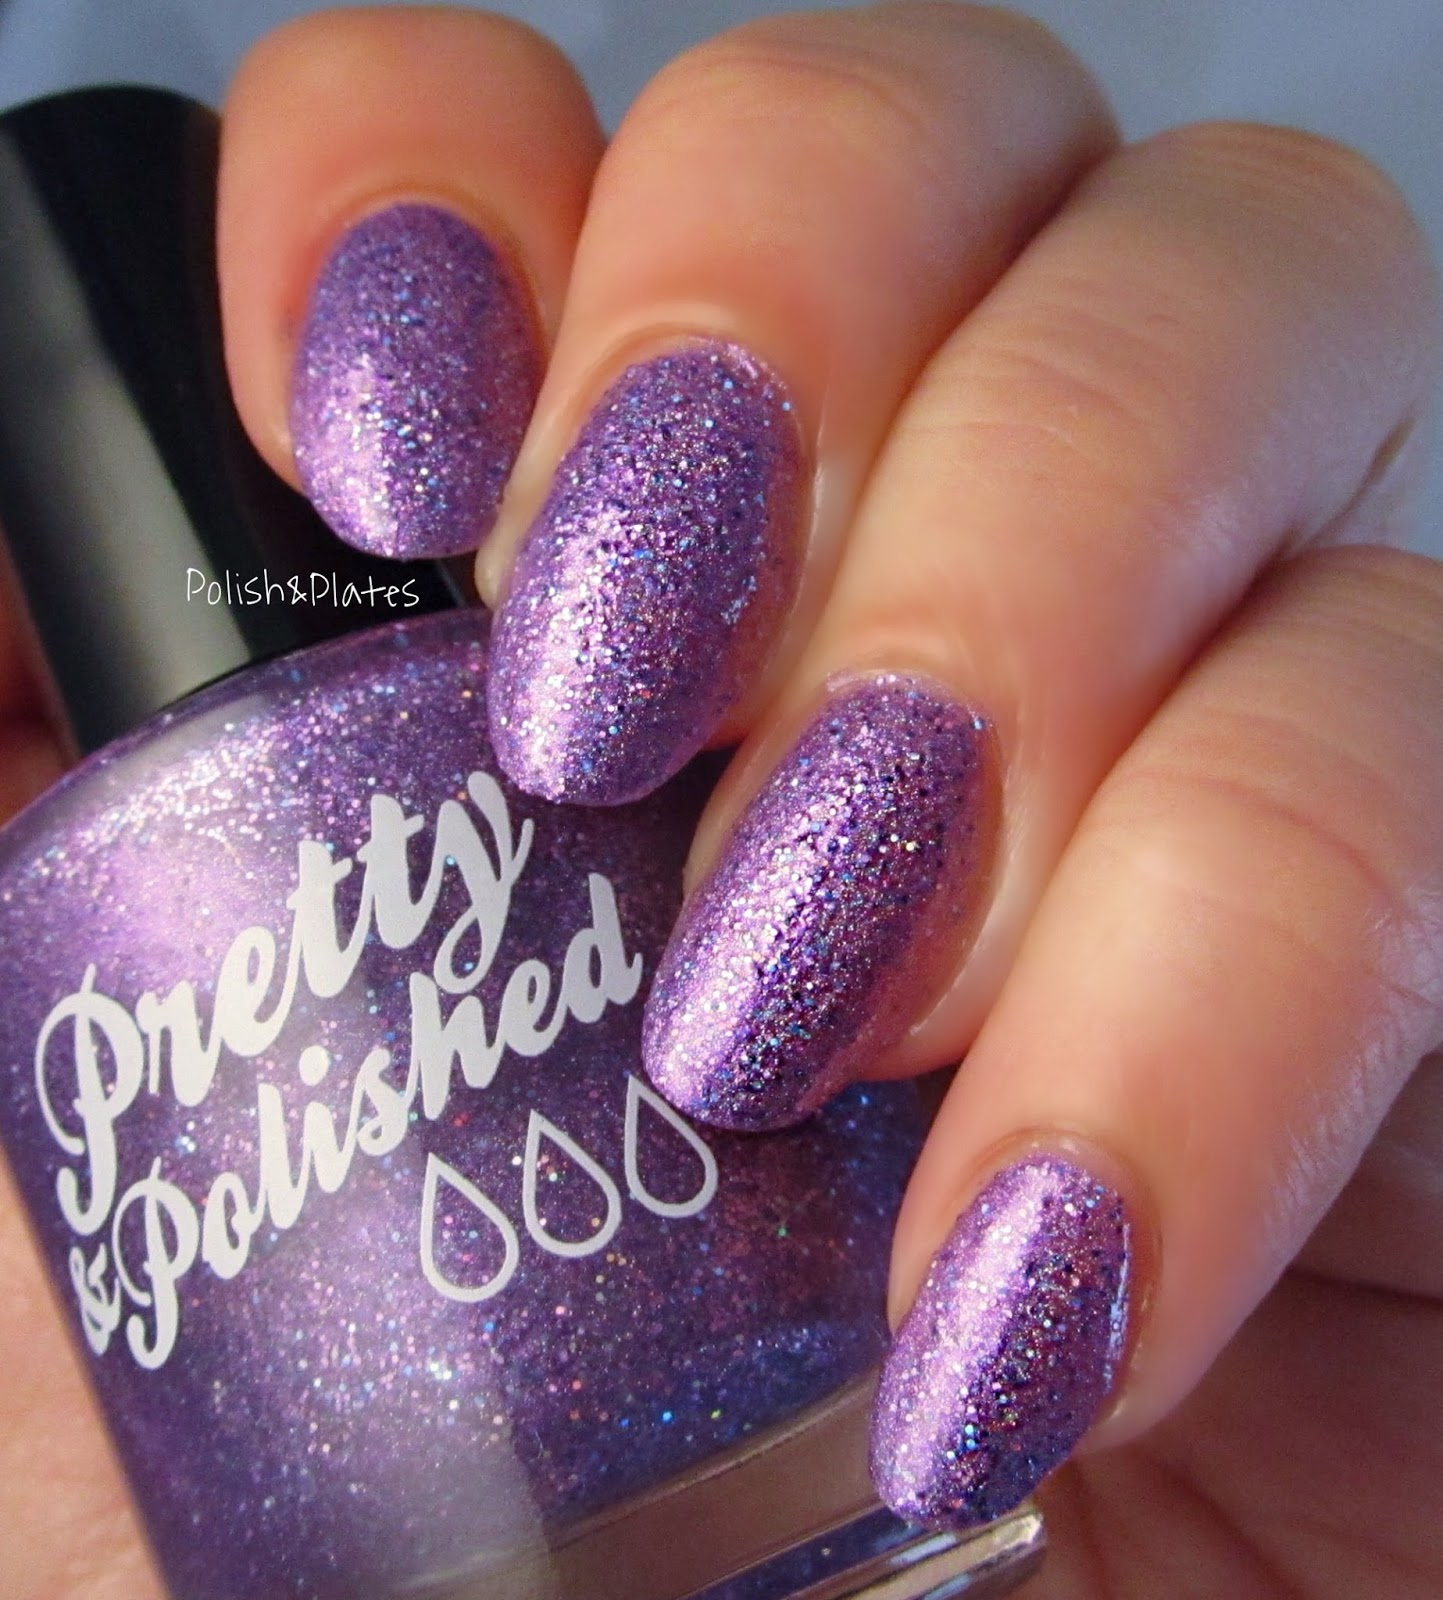 Polish & Plates: Pretty & Polished - The Color Purple Collection